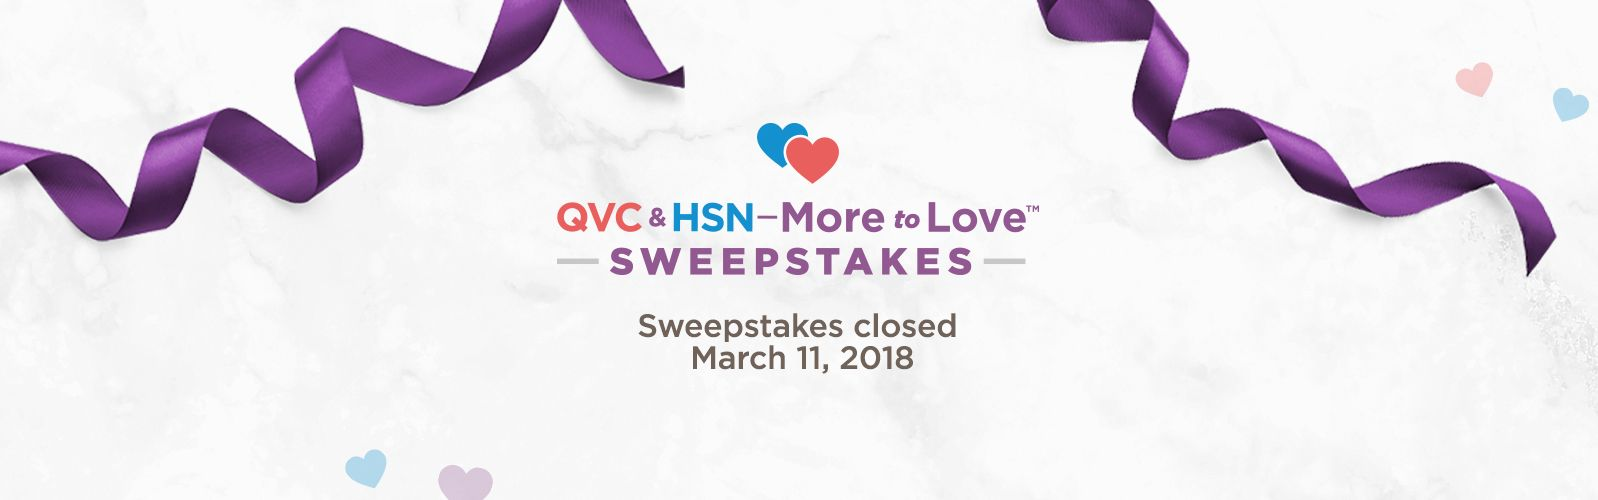 Love to shop qvc sweepstakes